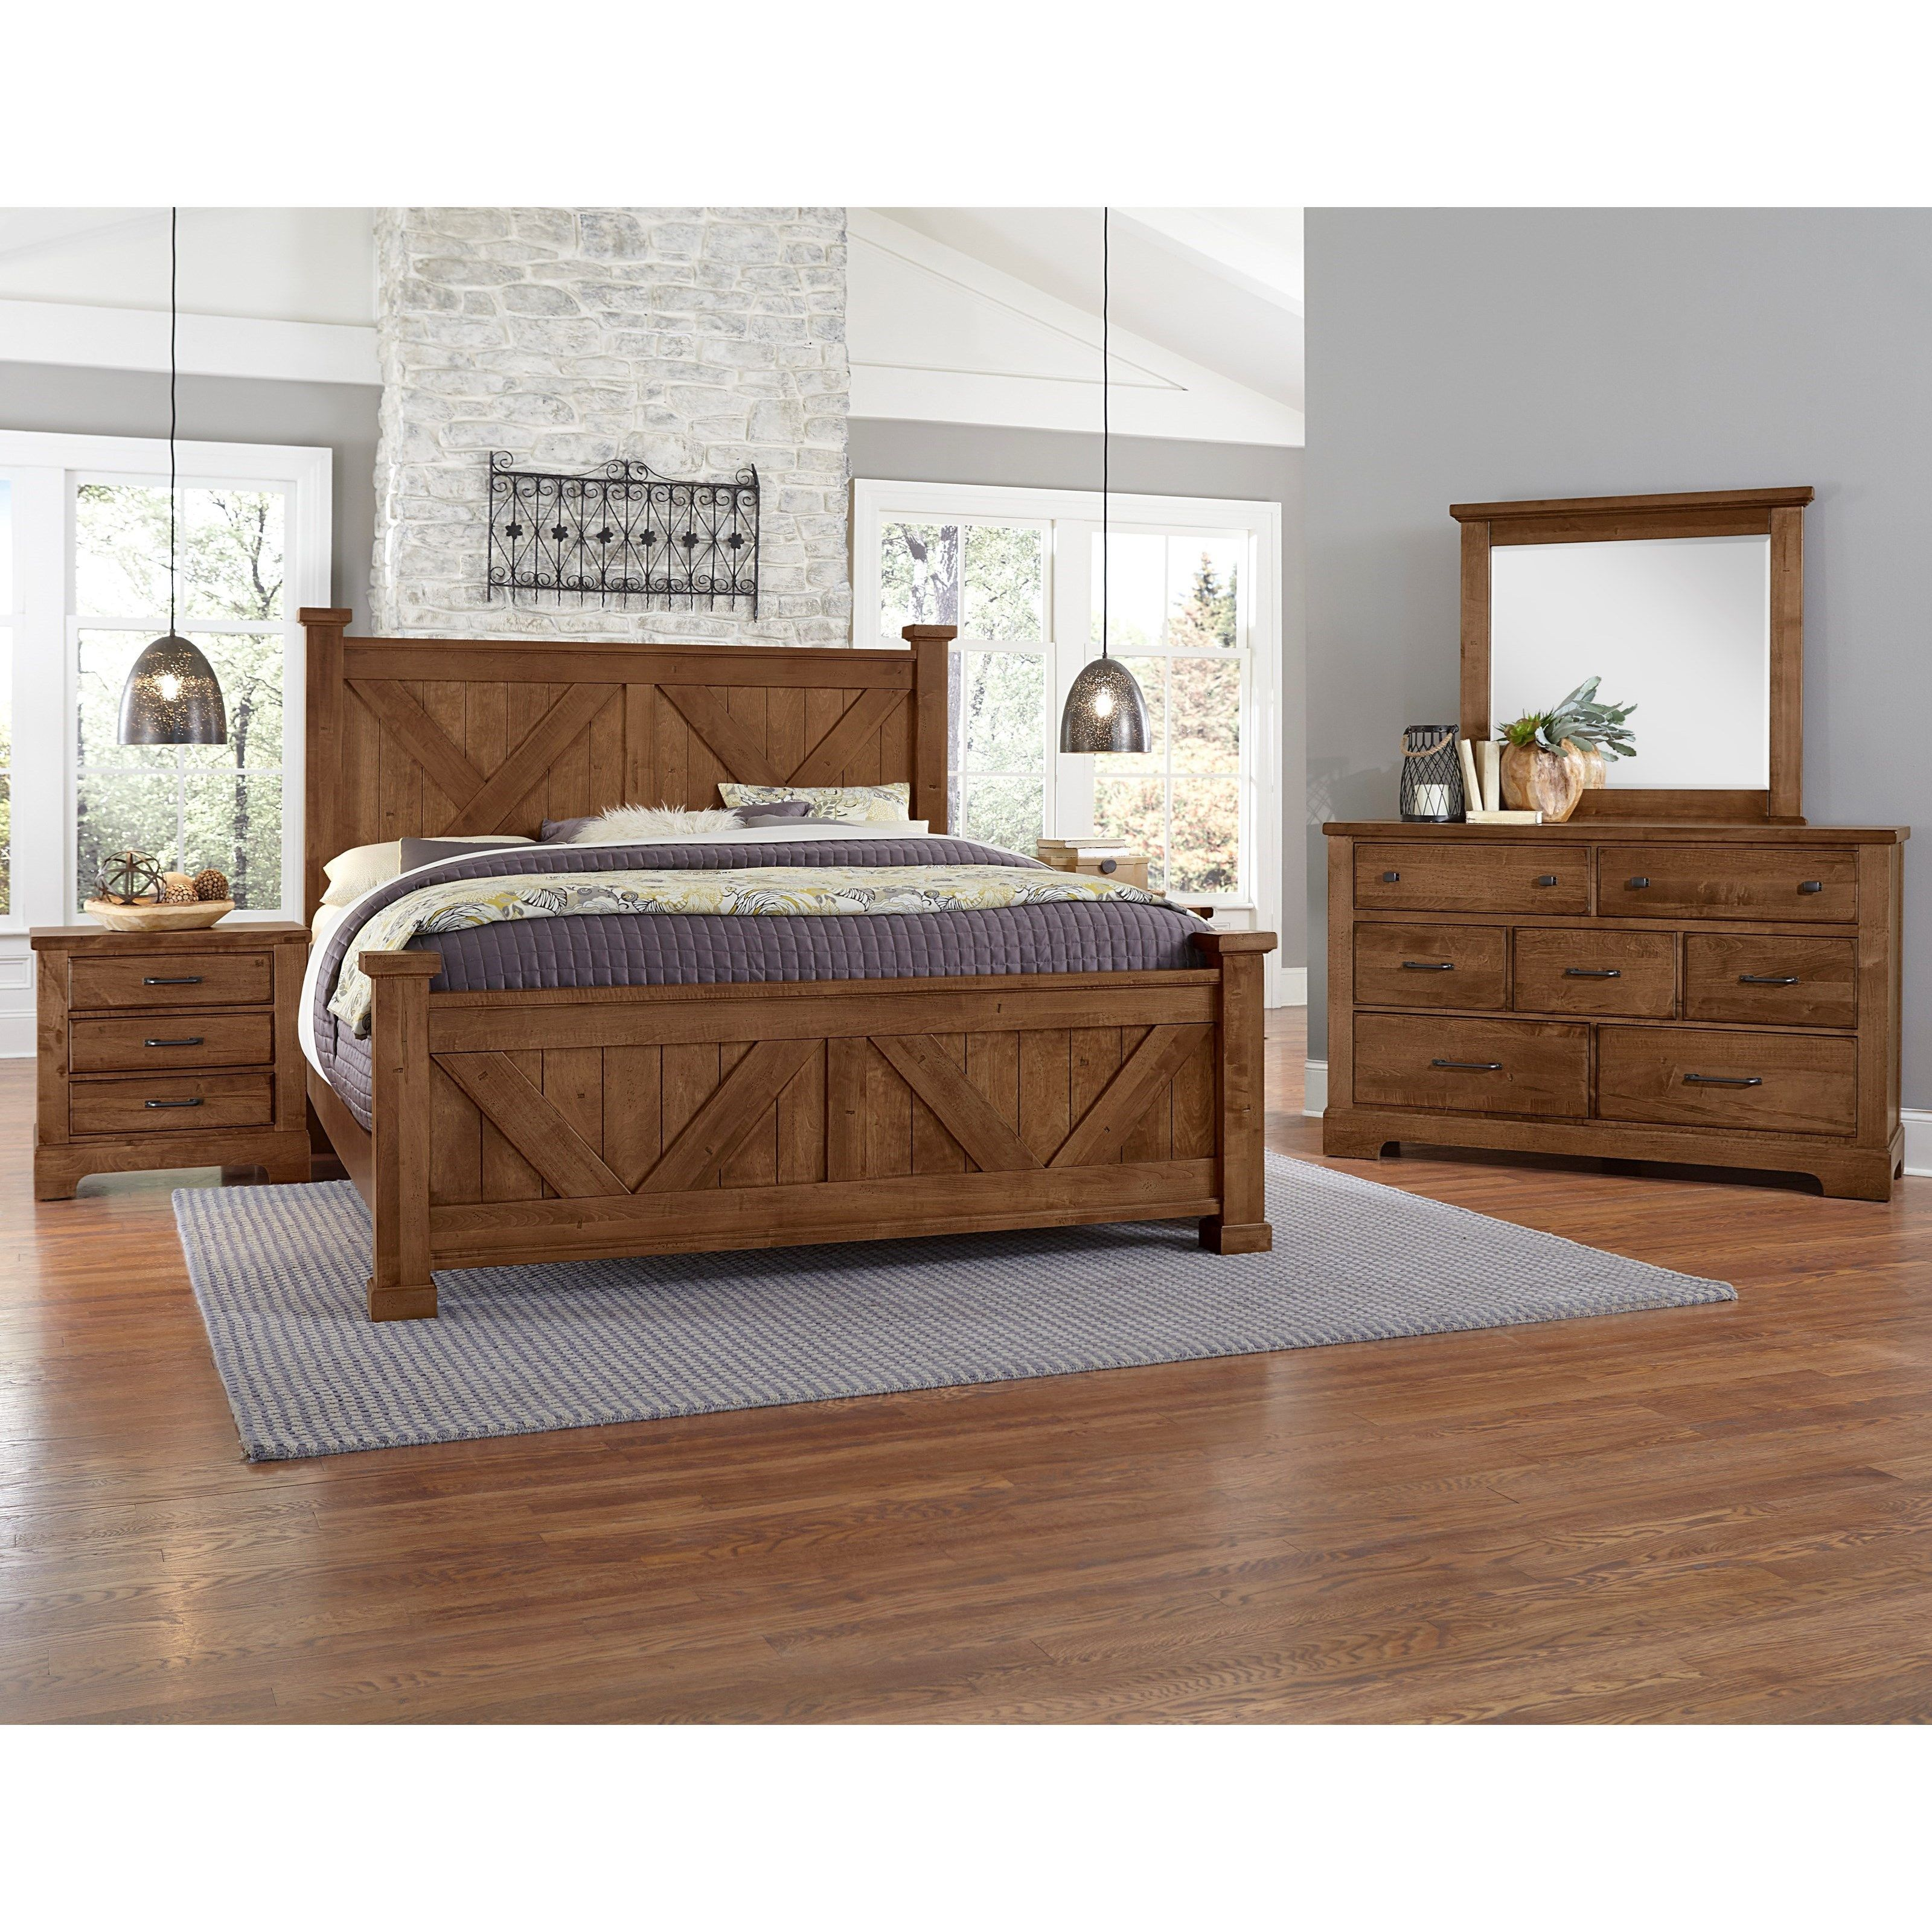 Cool Rustic Queen Bedroom Group by Artisan Farmhouse